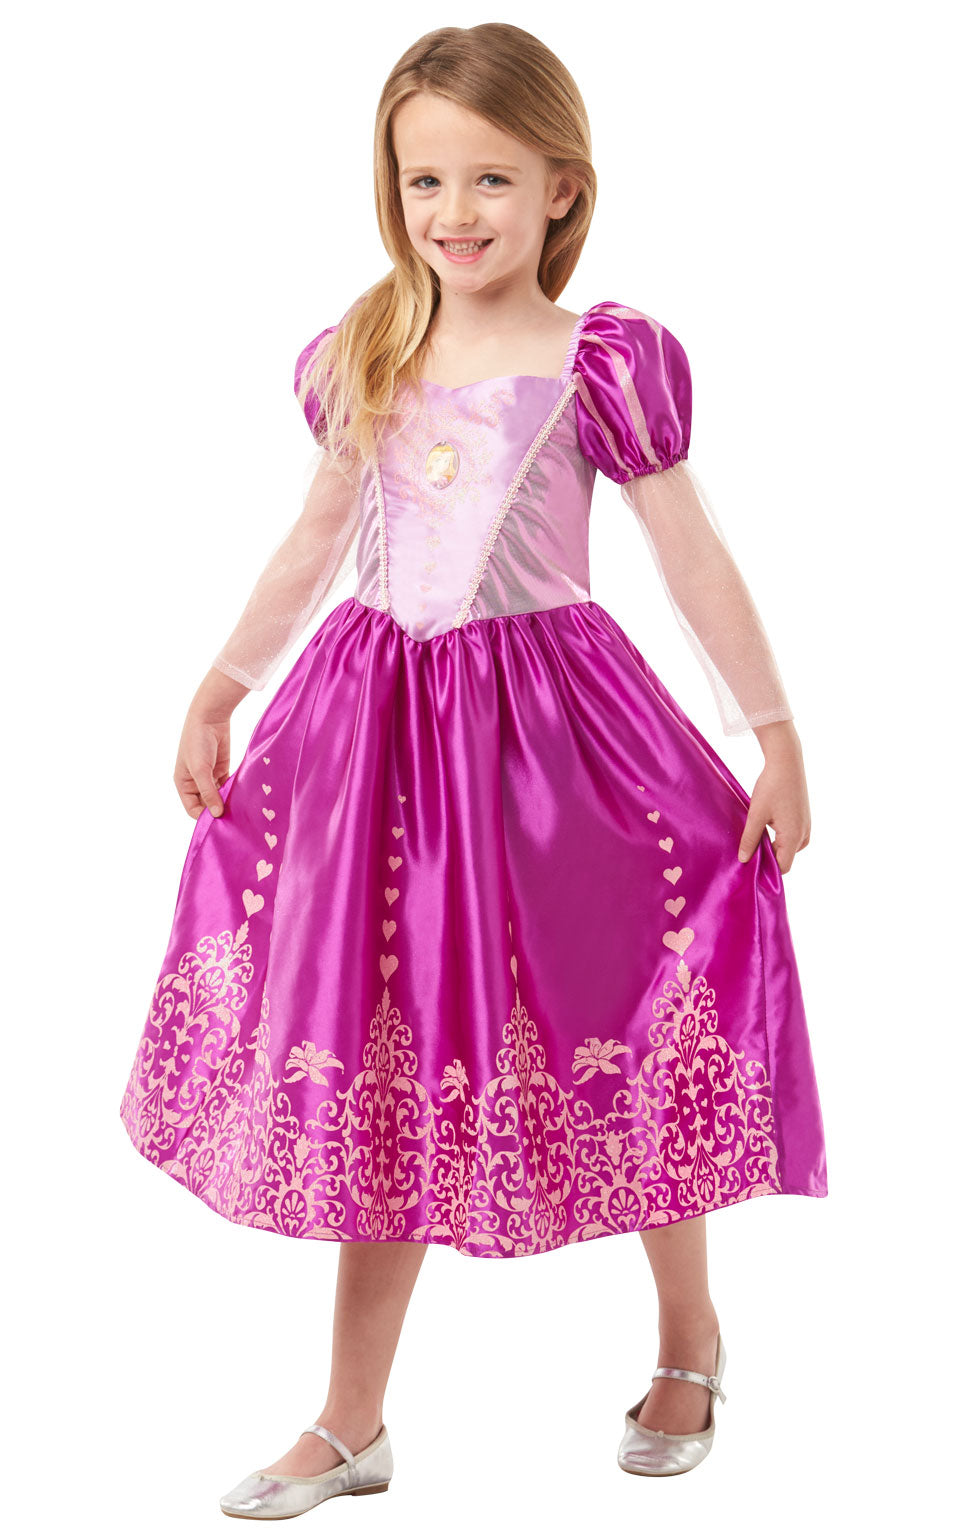 This gorgeous Disney Gem Princess Rapunzel outfit features a dress with Rapunzel iconic puff sleeves.  sc 1 st  My Fancy Dress & Disney Gem Princess Rapunzel Costume u2013 My Fancy Dress